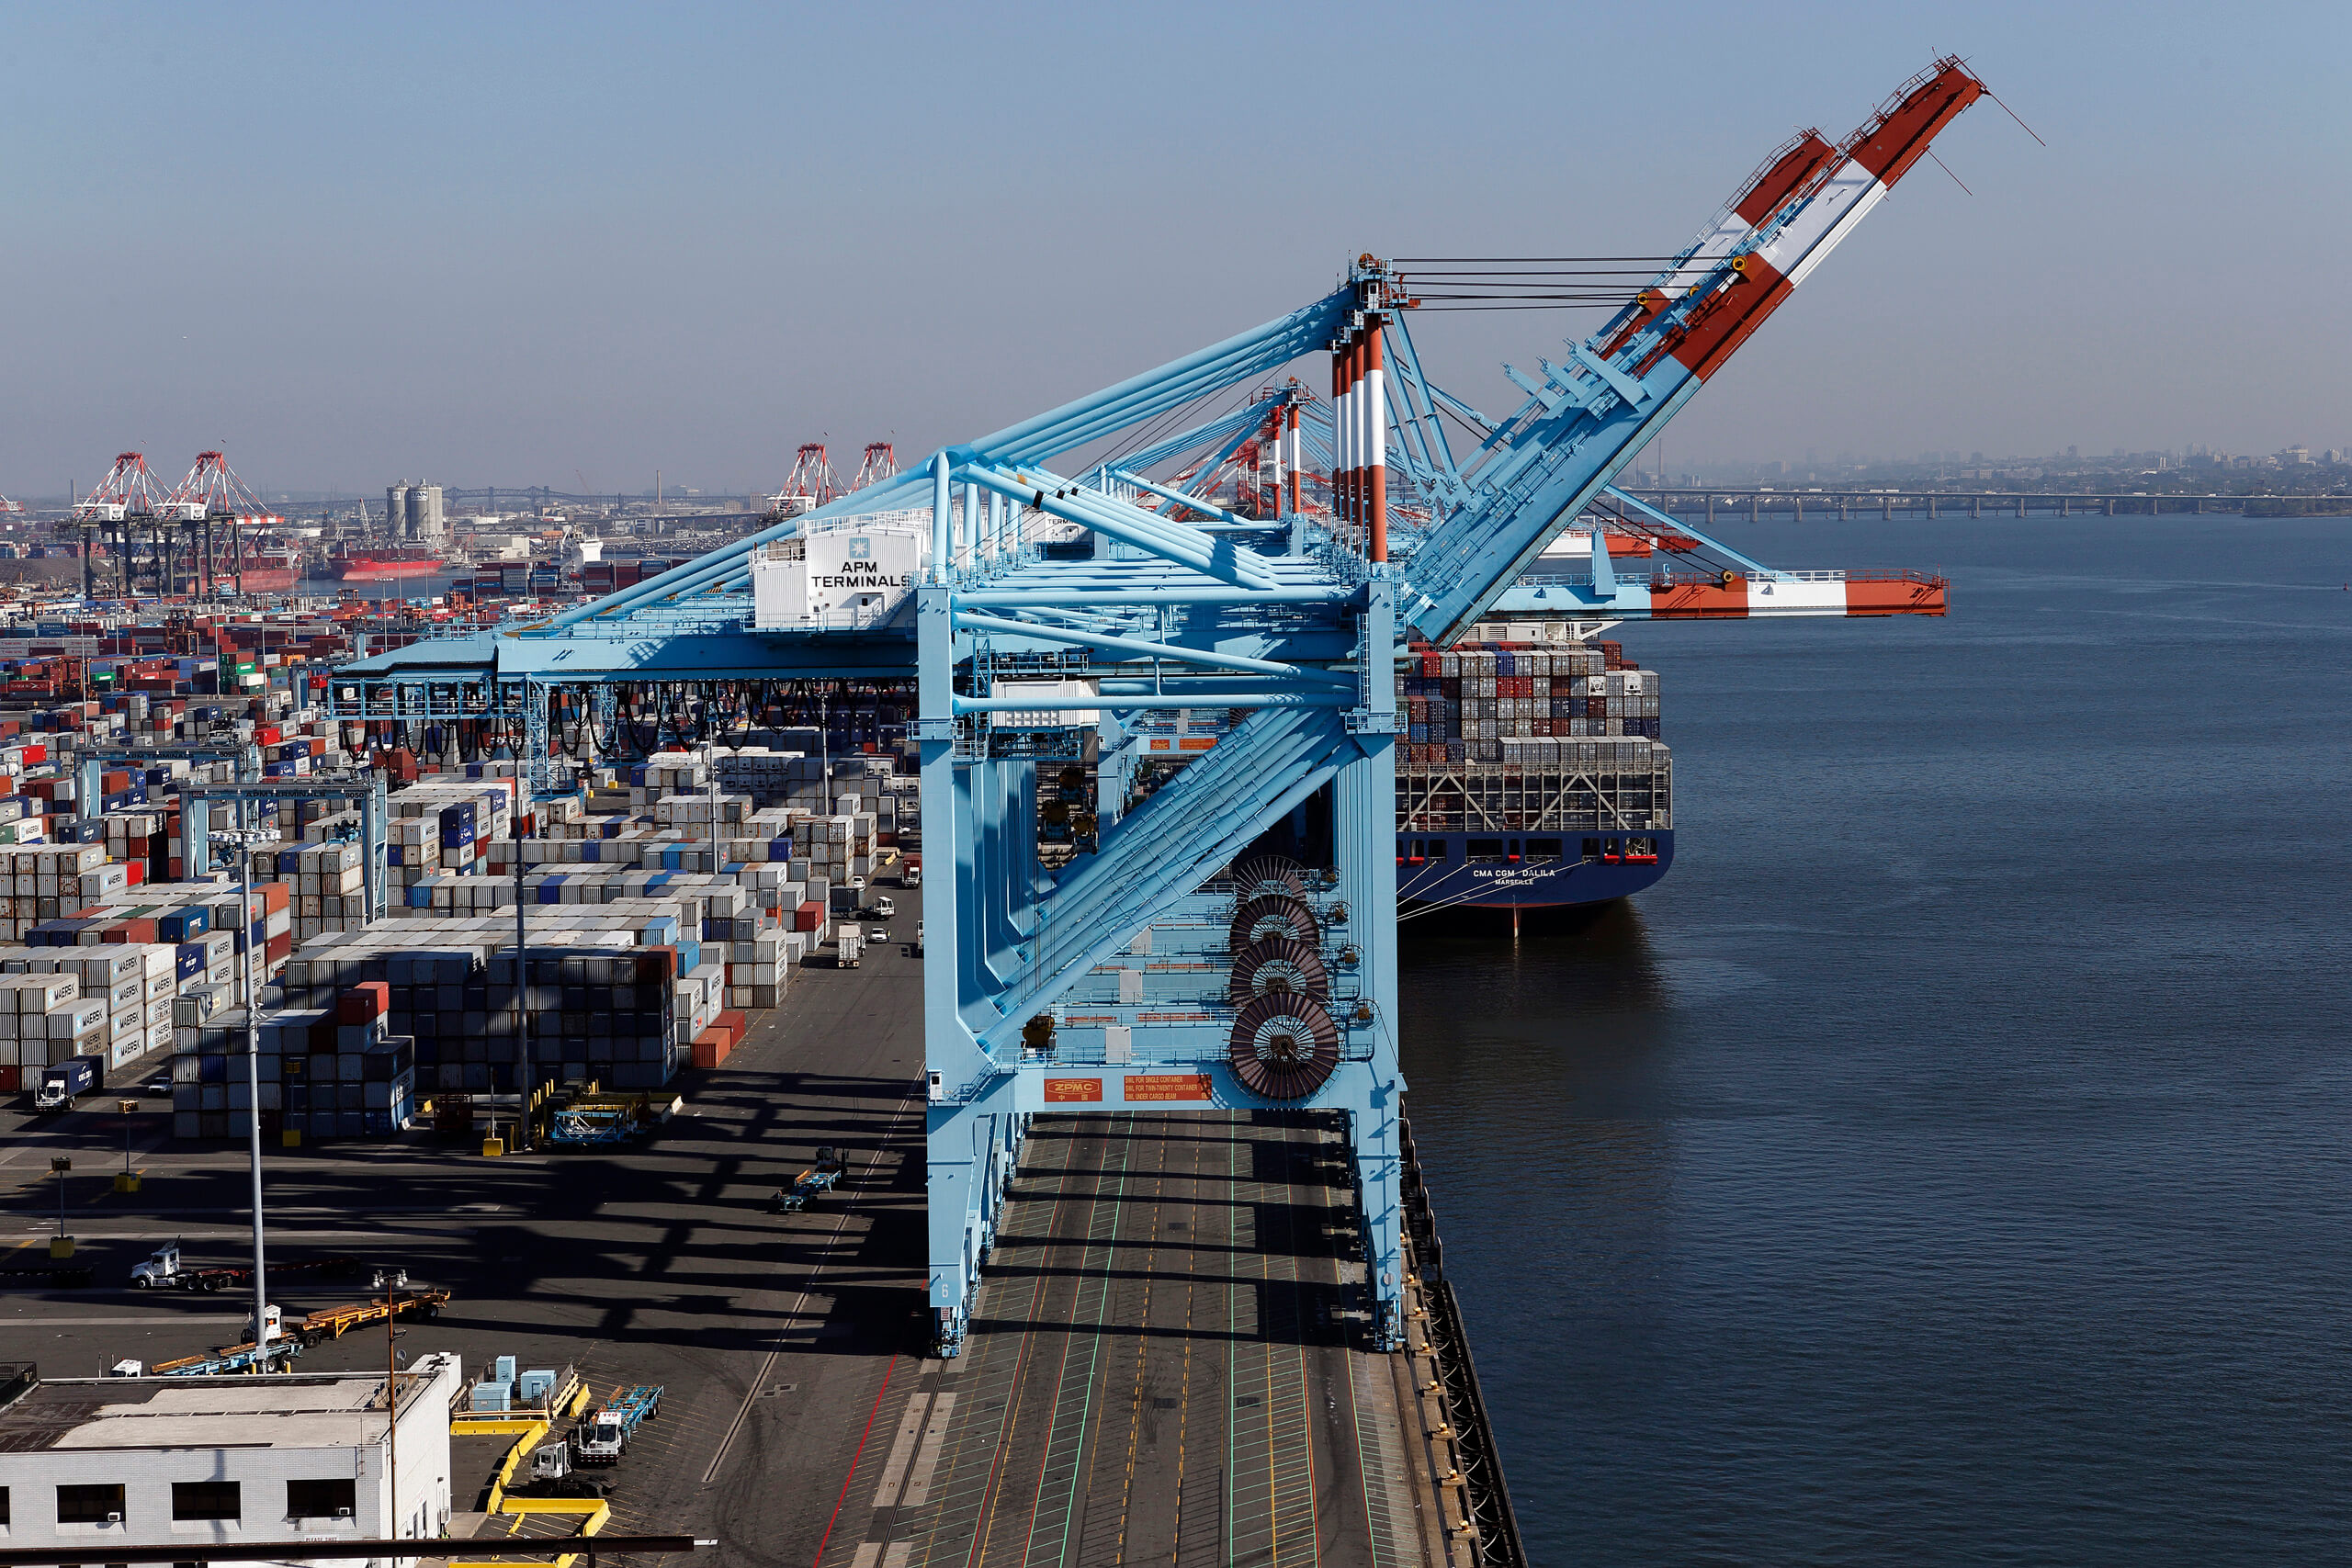 Aerial photo of a blue cargo-freight crane in Port of Newark, NJ at APM Terminals.